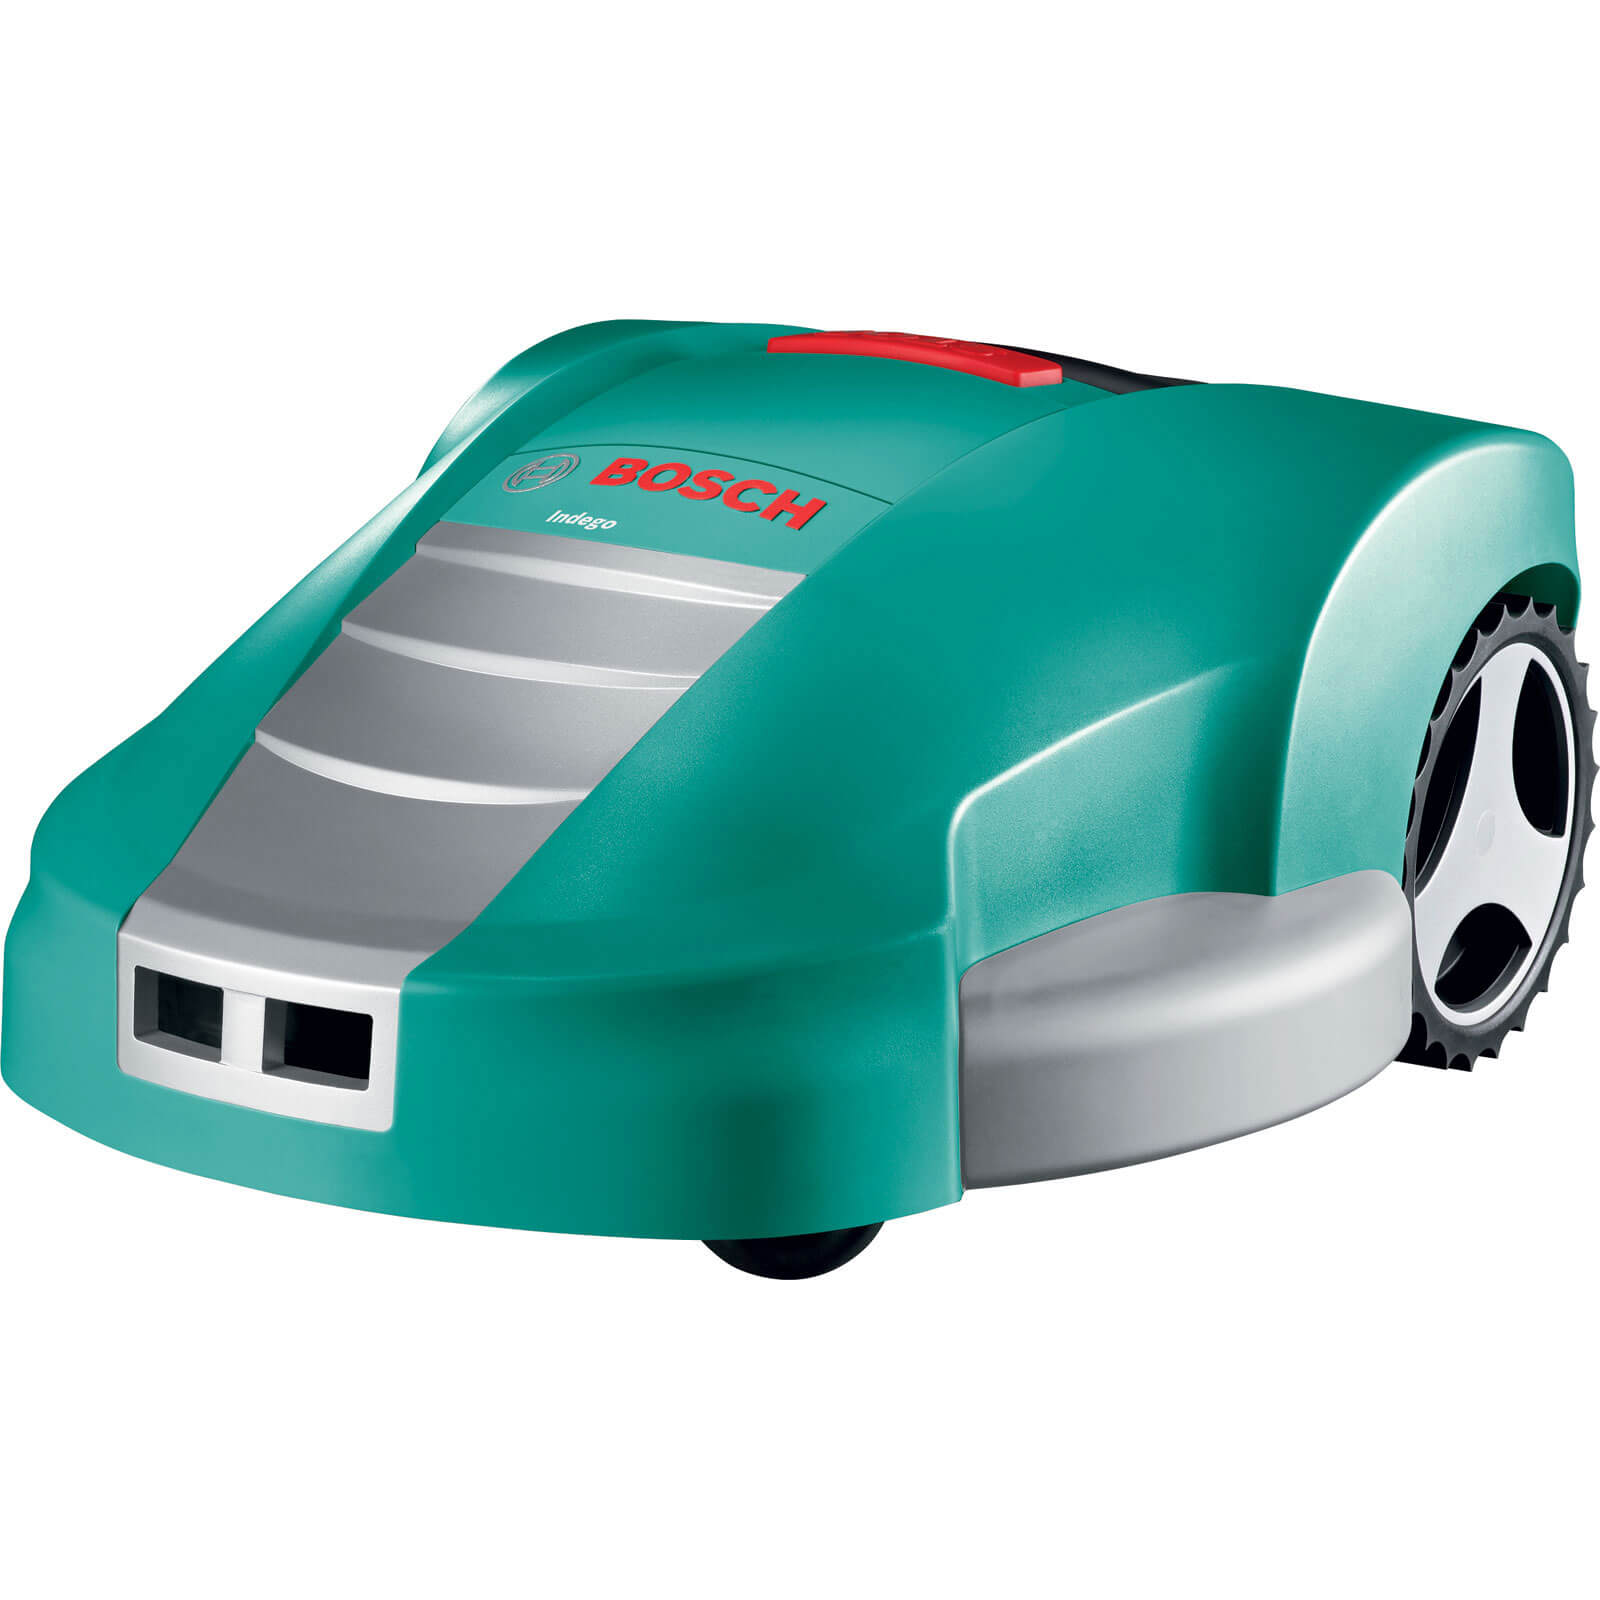 Bosch INDEGO 32V Cordless Robotic Lawn Mower 260mm Cut Width with Integral Lithium Ion Battery